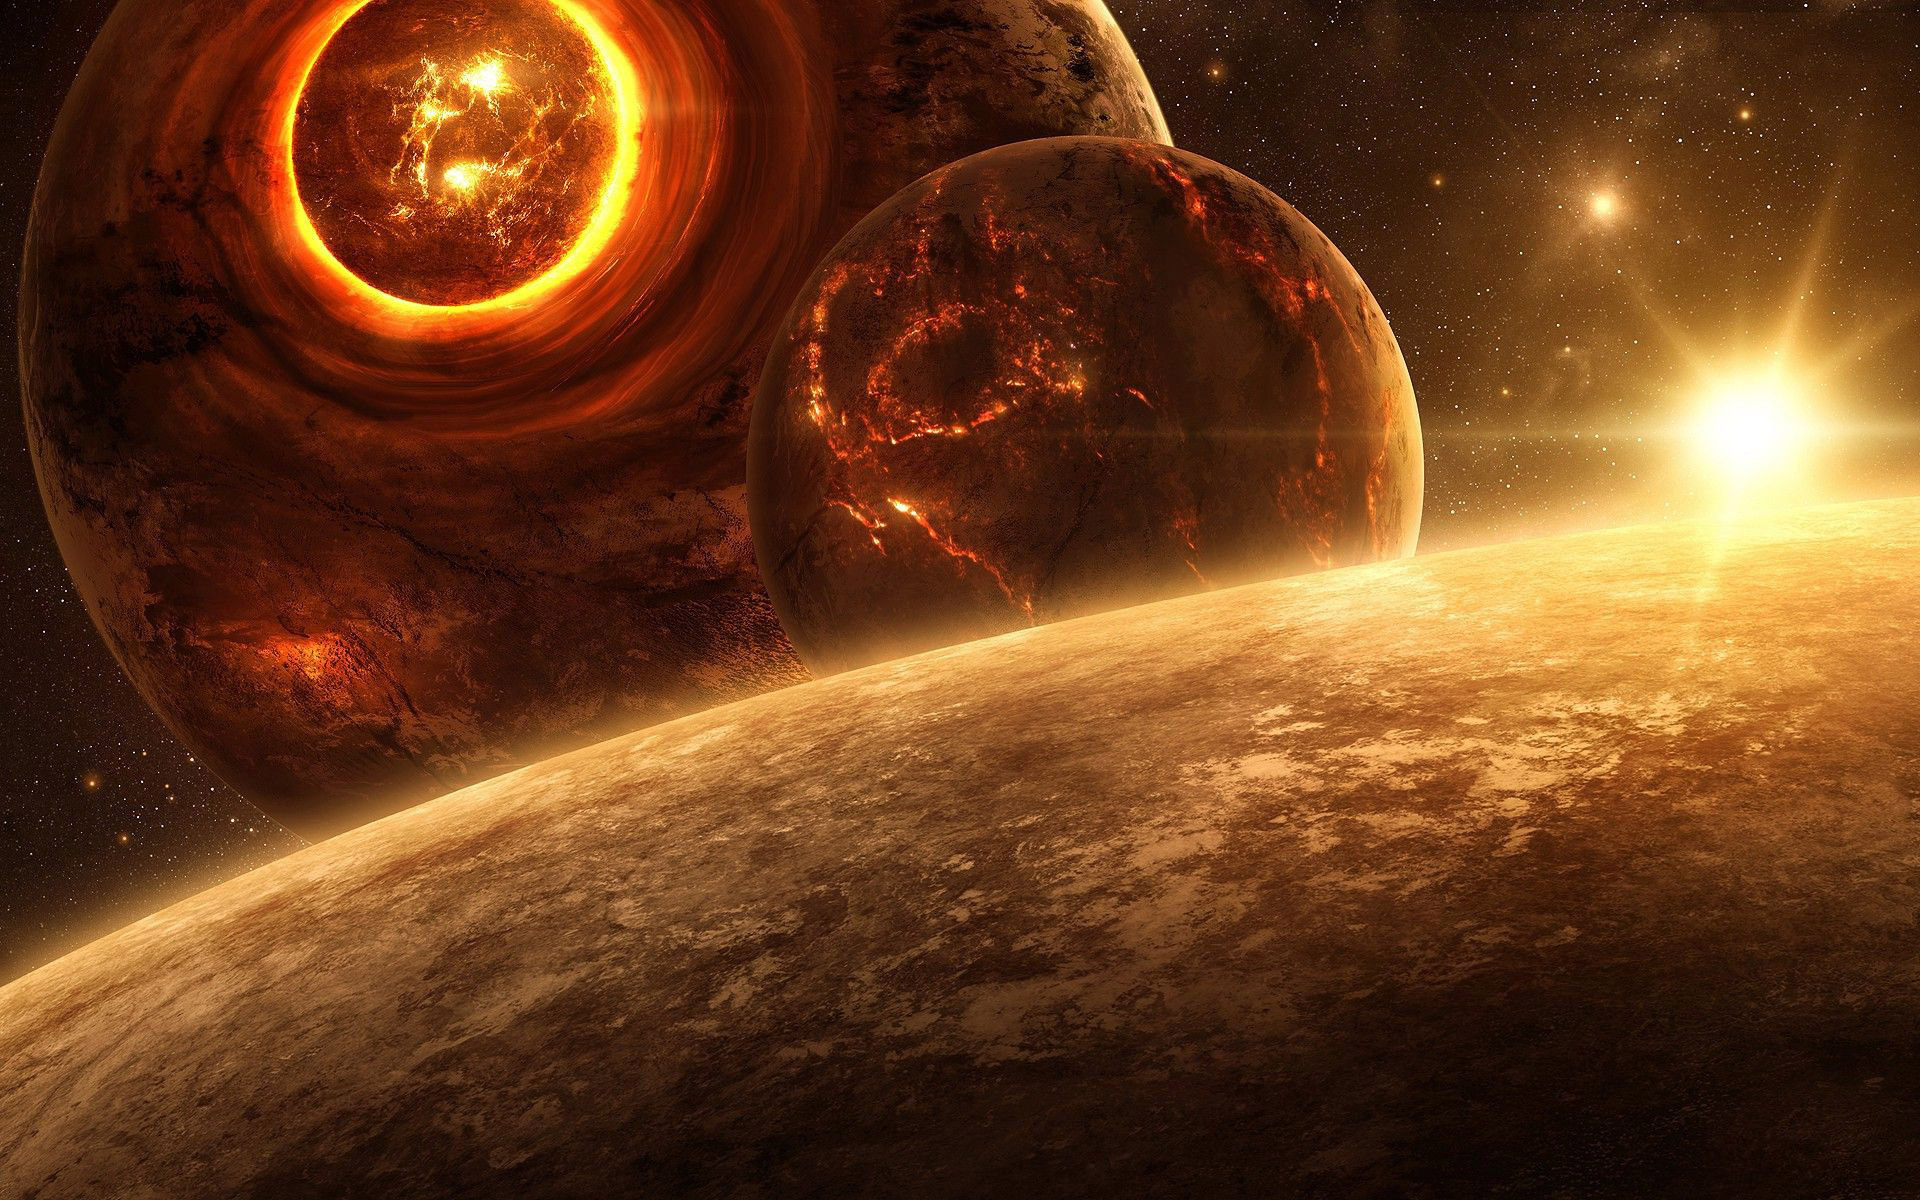 planets hd wallpapers - photo #35